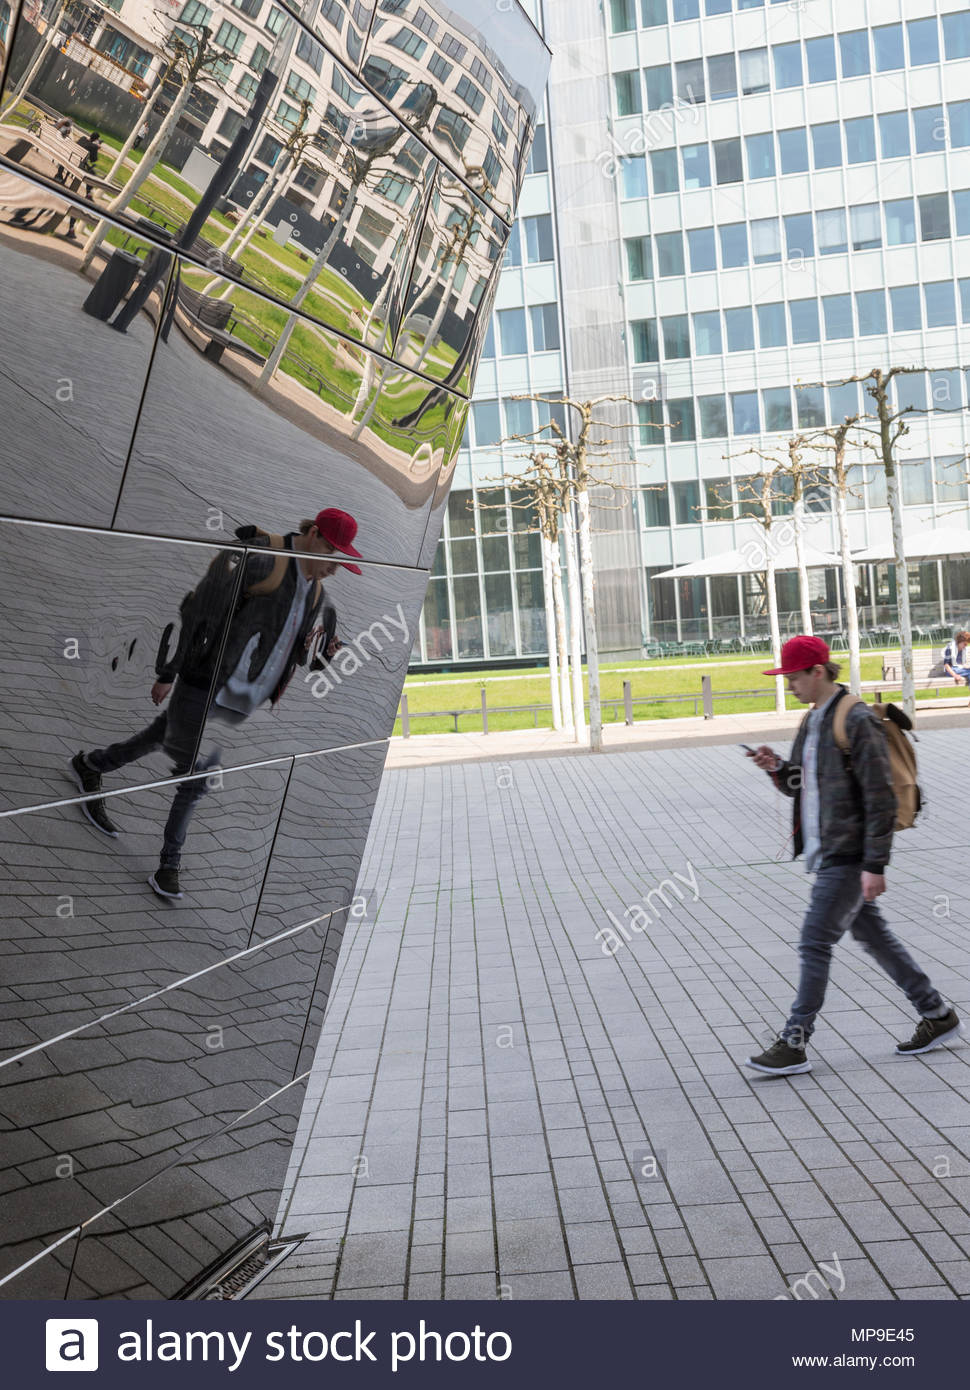 young man 20ish looking at his smart phone in thought absorbed oblivious of surrounding in step with mirror reflexion backpack casual wear red cap - Stock Image